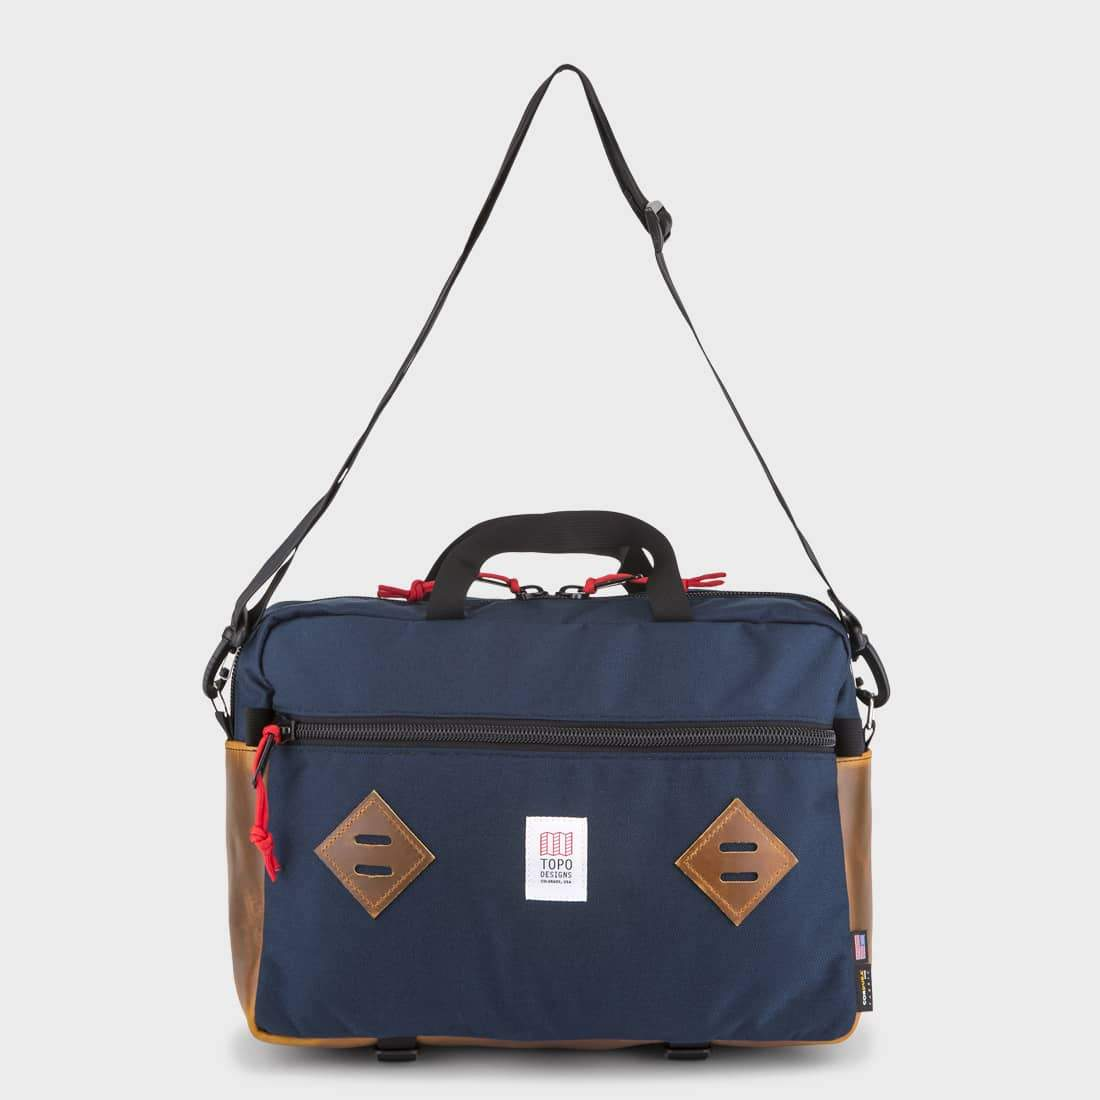 TOPO Designs Mountain Briefcase Navy/Brown Leather